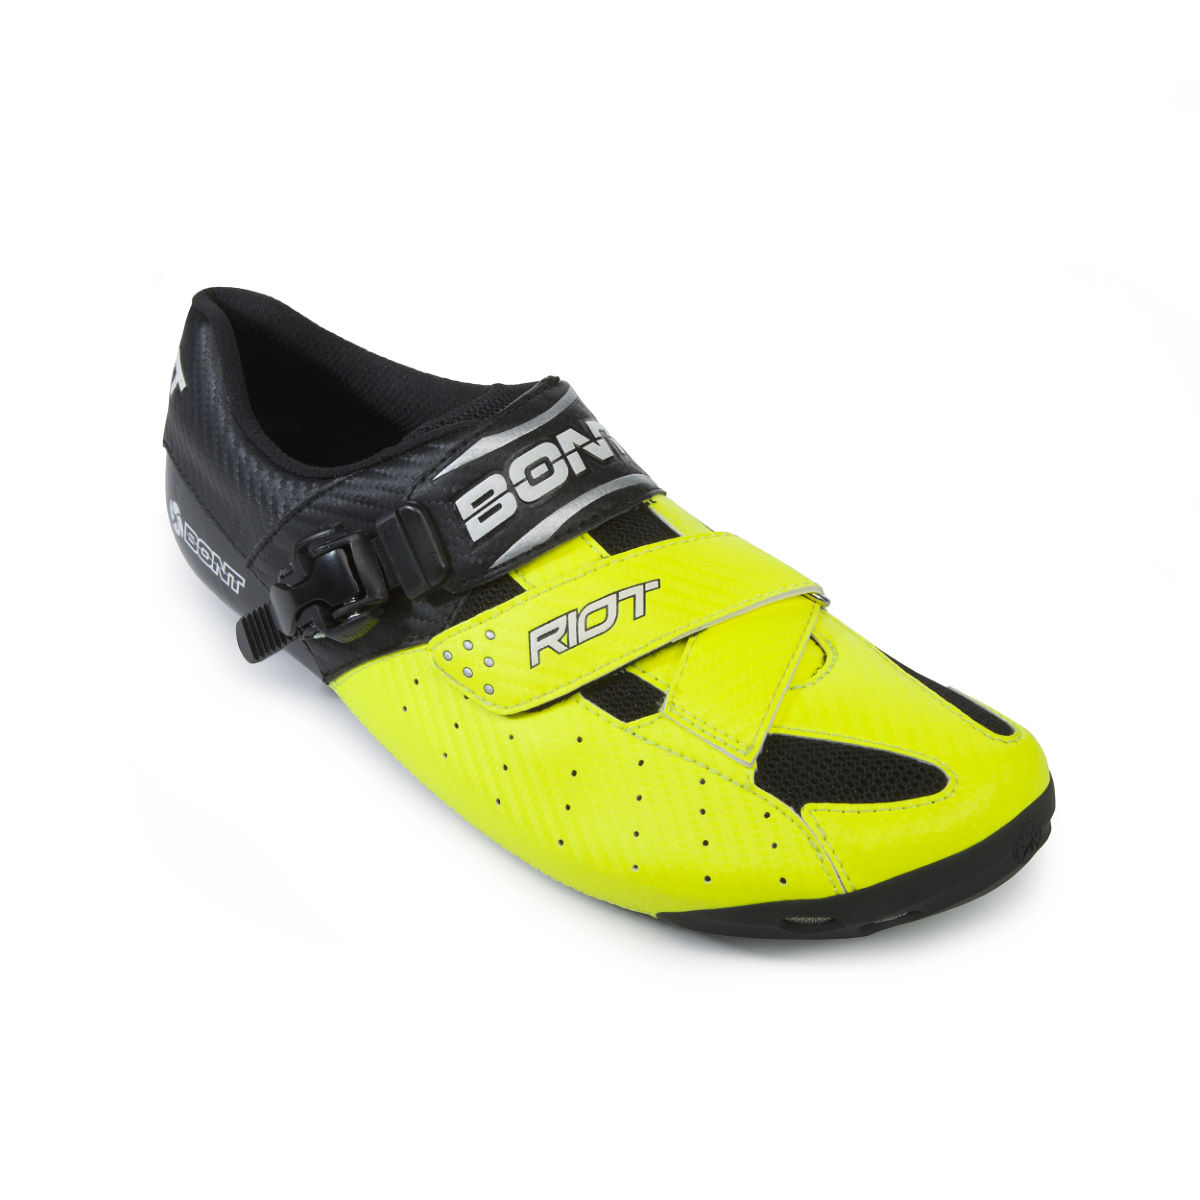 Bont Riot Road Shoe - Limited Edition! Road Shoes